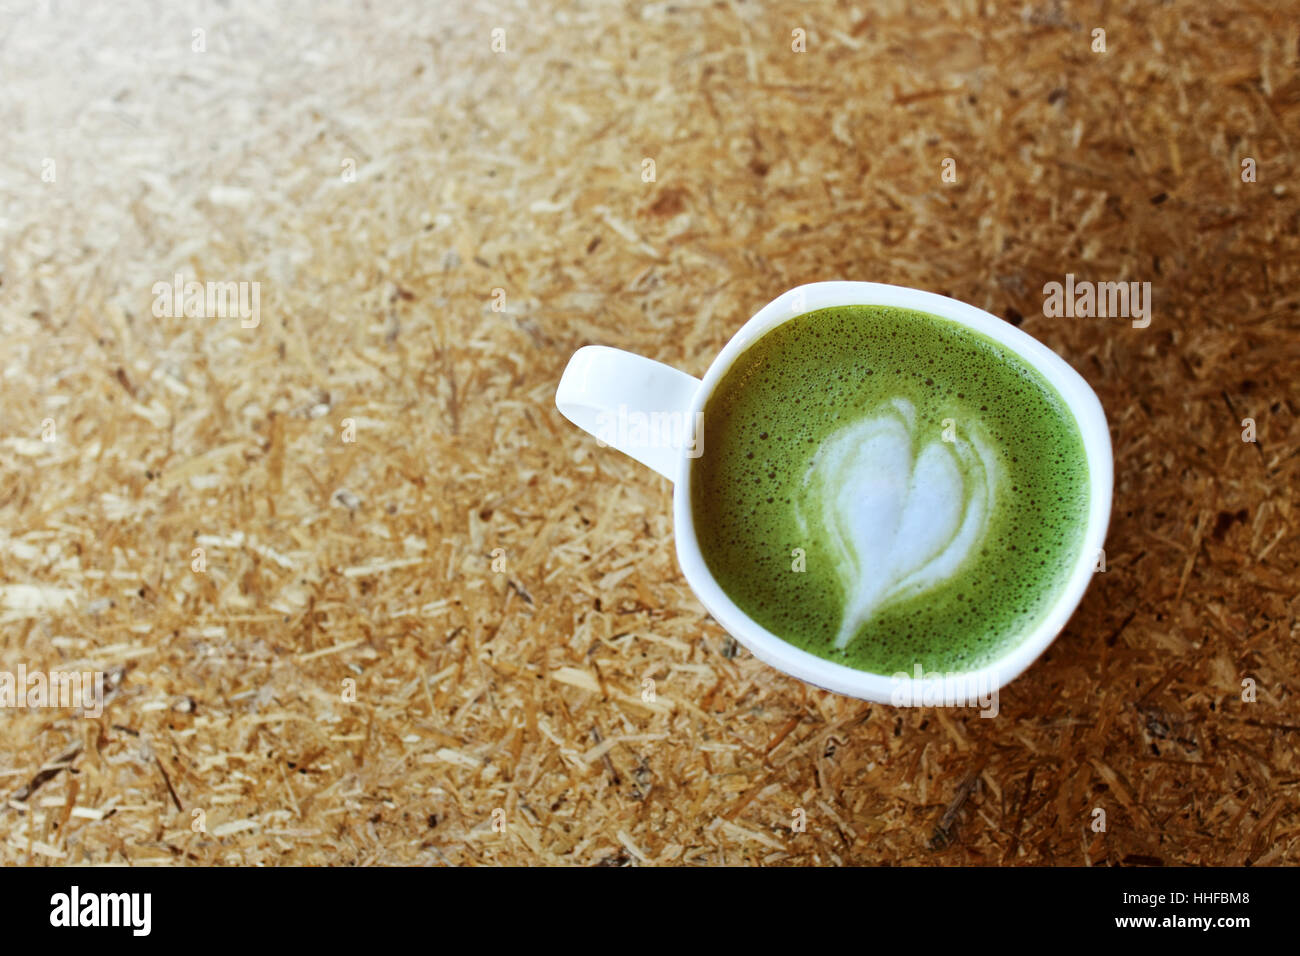 Matcha Green Tea Cup with Heart Latte Art Shape in Top View Perspective and Blank Space of Cork Table for Copy - Stock Image